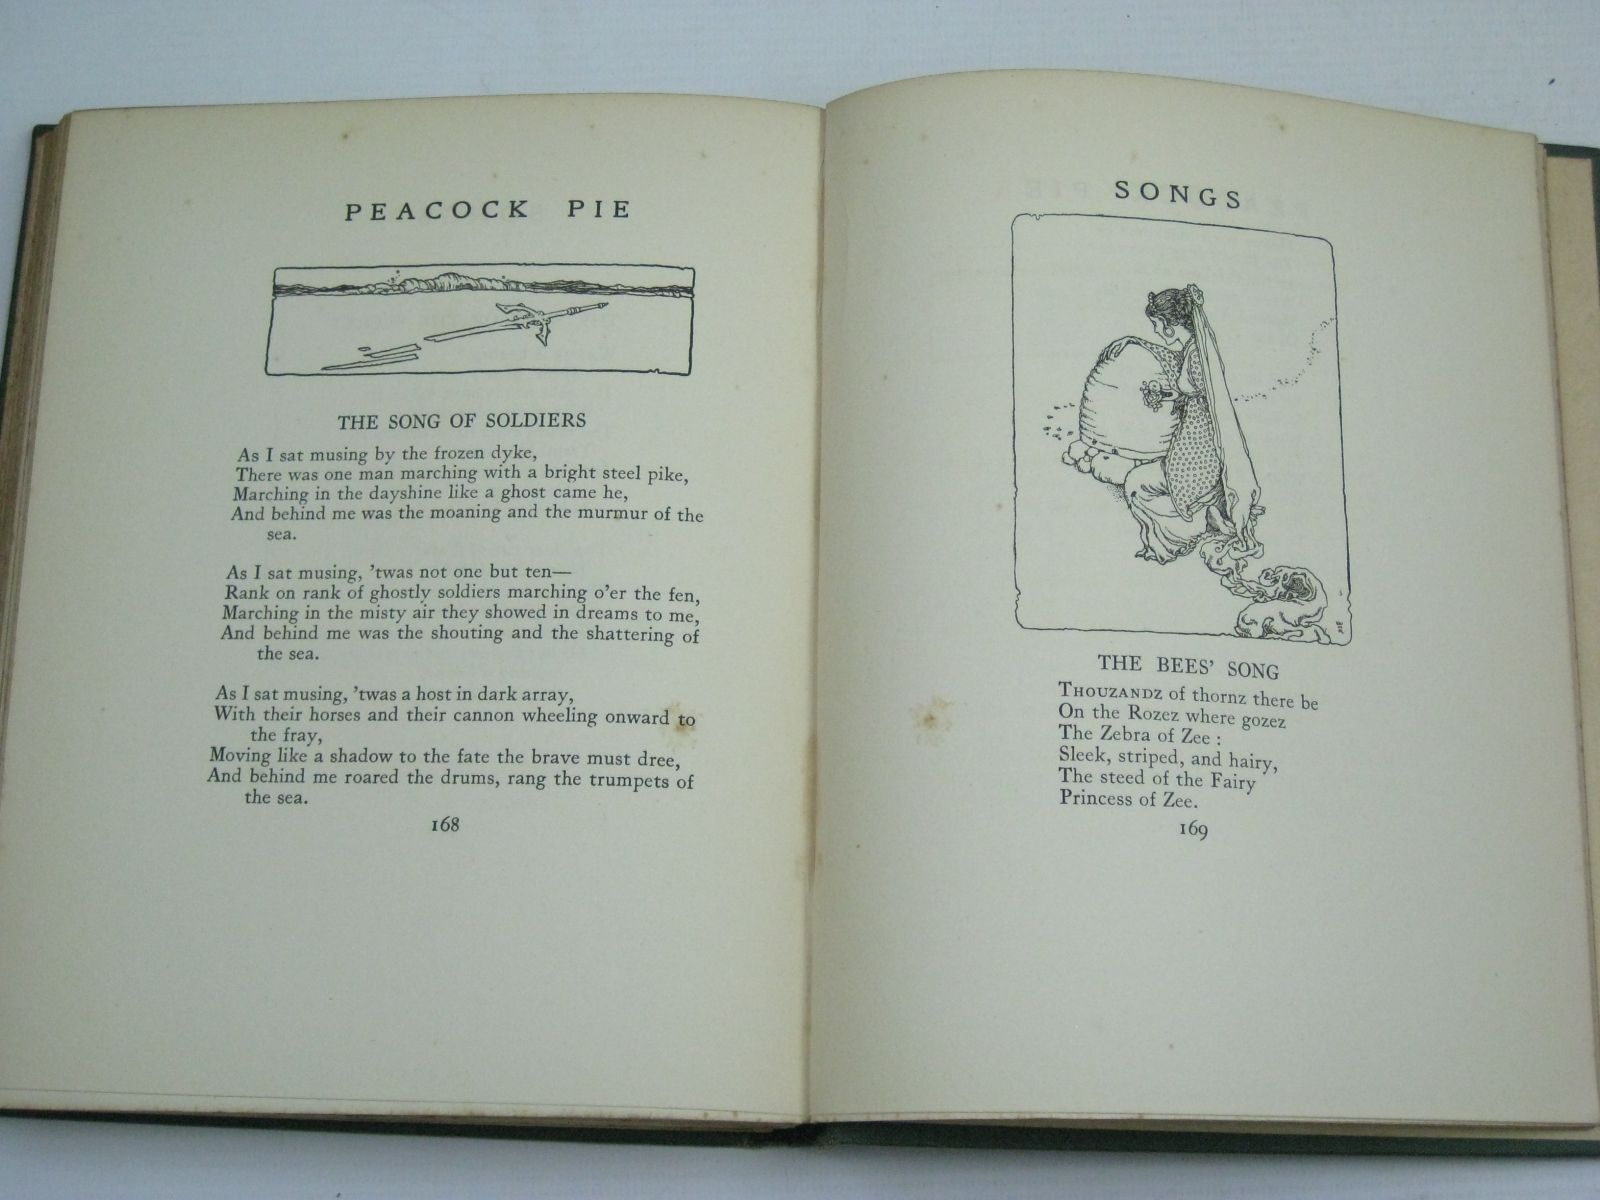 Photo of PEACOCK PIE - A BOOK OF RHYMES written by De La Mare, Walter illustrated by Robinson, W. Heath published by Constable and Company Ltd. (STOCK CODE: 1405775)  for sale by Stella & Rose's Books